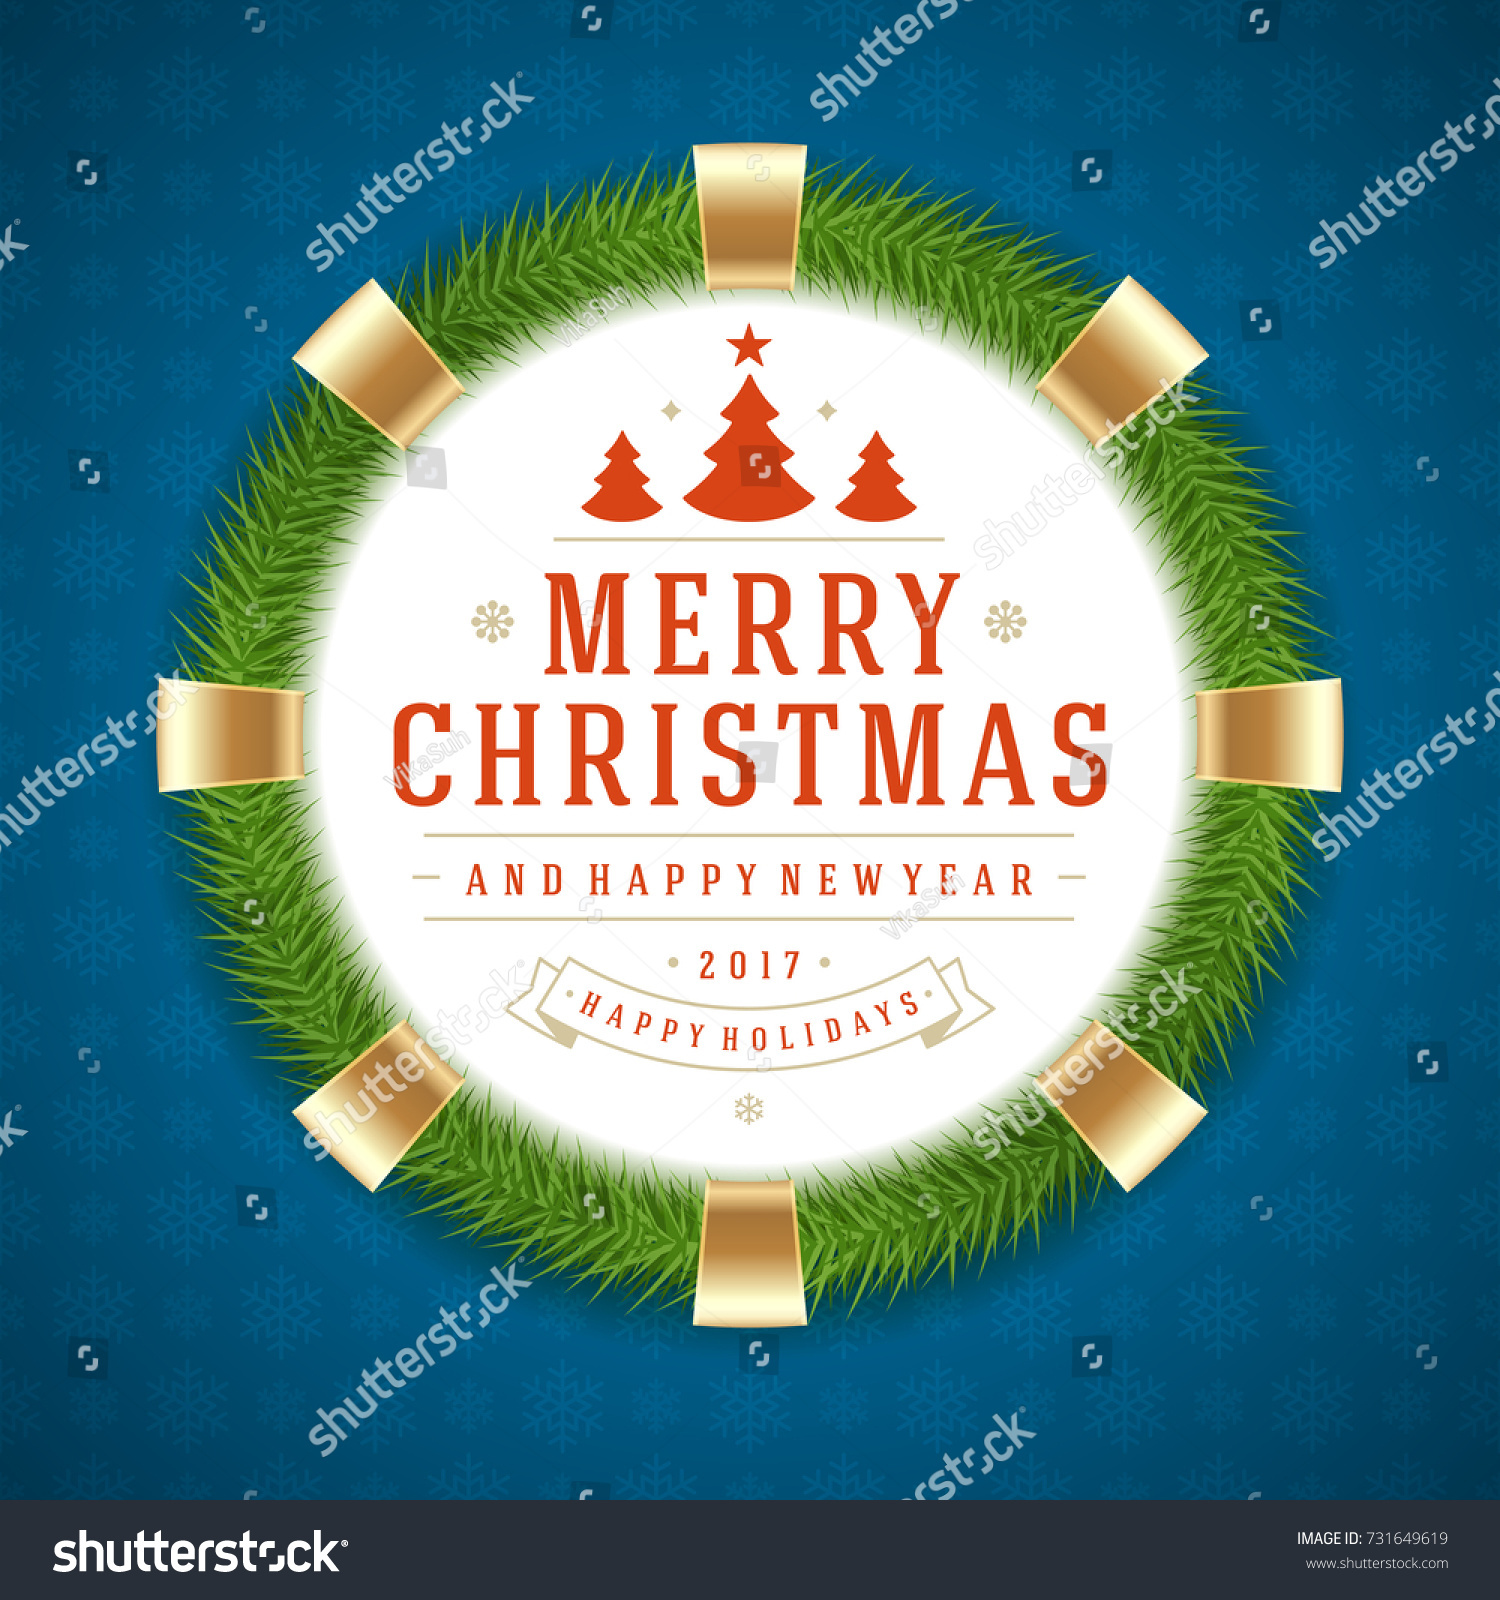 Christmas greeting card poster design merry stock vector 731649619 christmas greeting card or poster design merry christmas typography holidays wish logo emblem template kristyandbryce Choice Image